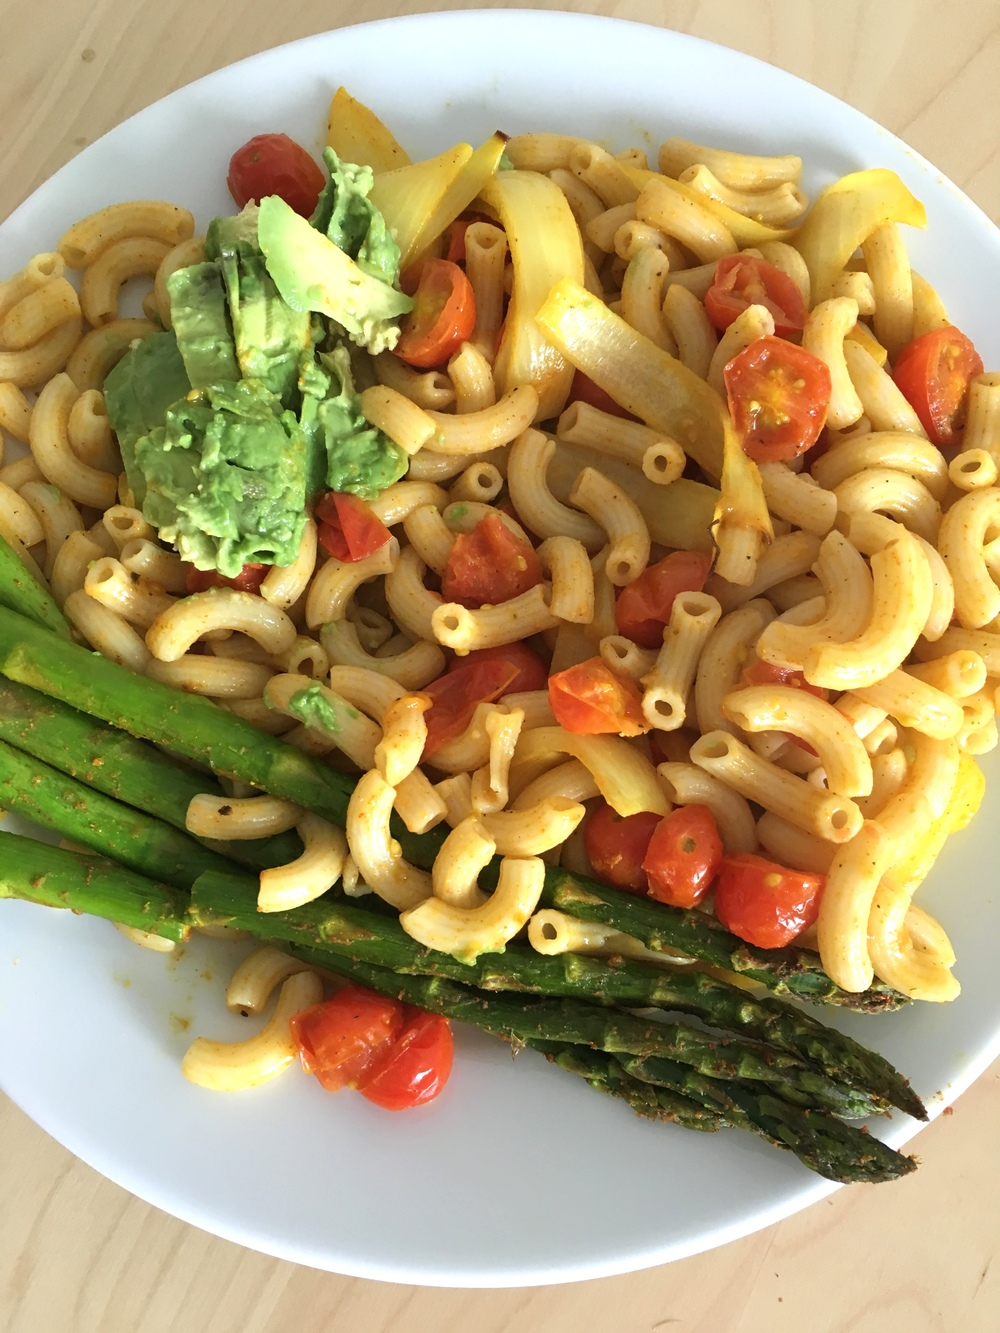 A home-cooked plate of brown rice pasta with sauteed cherry tomatoes and onions, avocado, and roasted asparagus added.